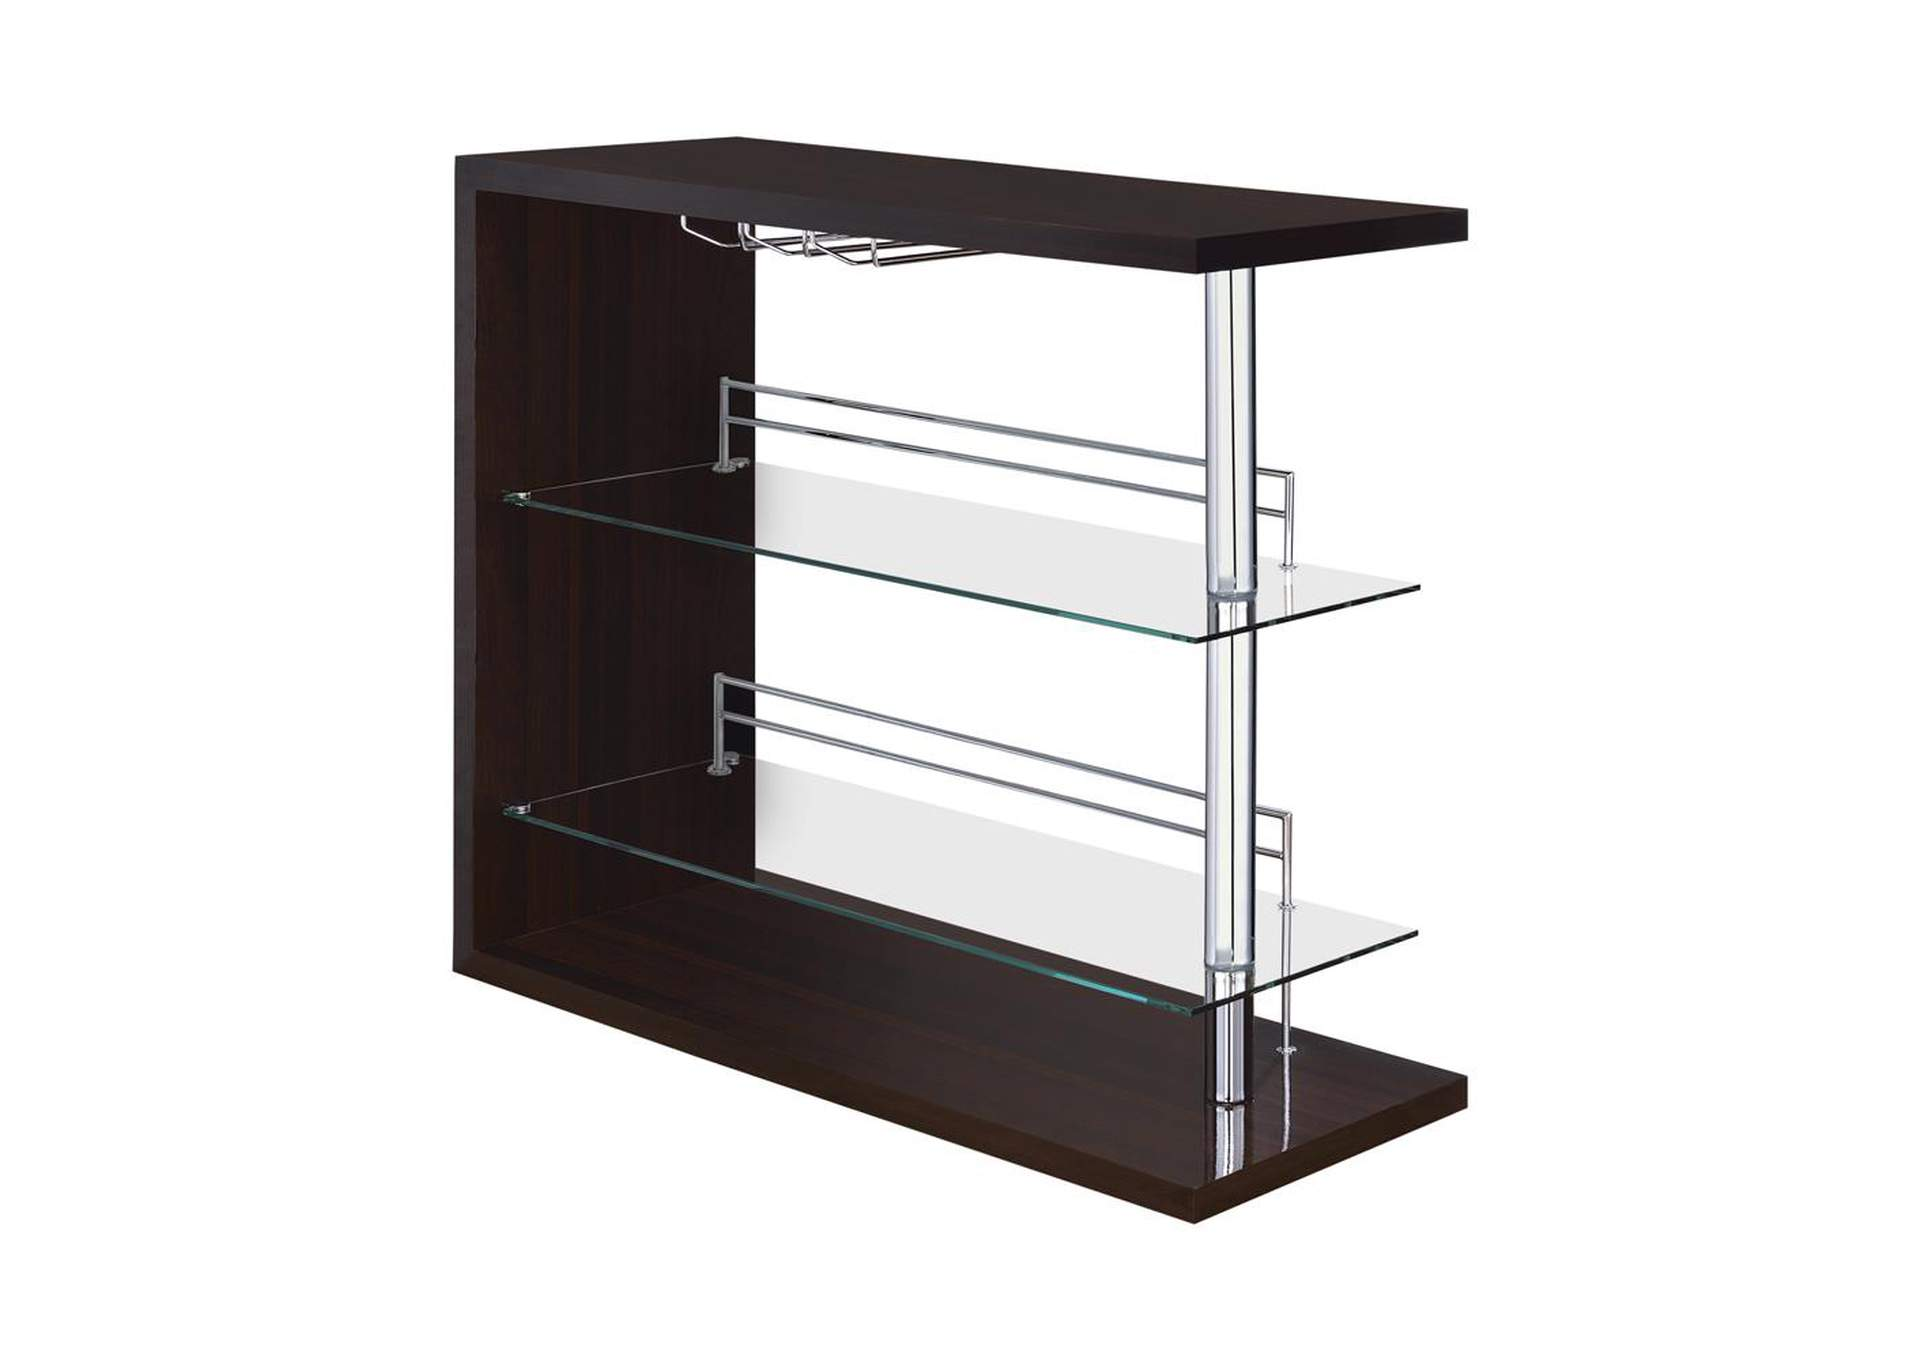 Cappuccino High Gloss Two-Shelf Contemporary Bar Unit,Coaster Furniture